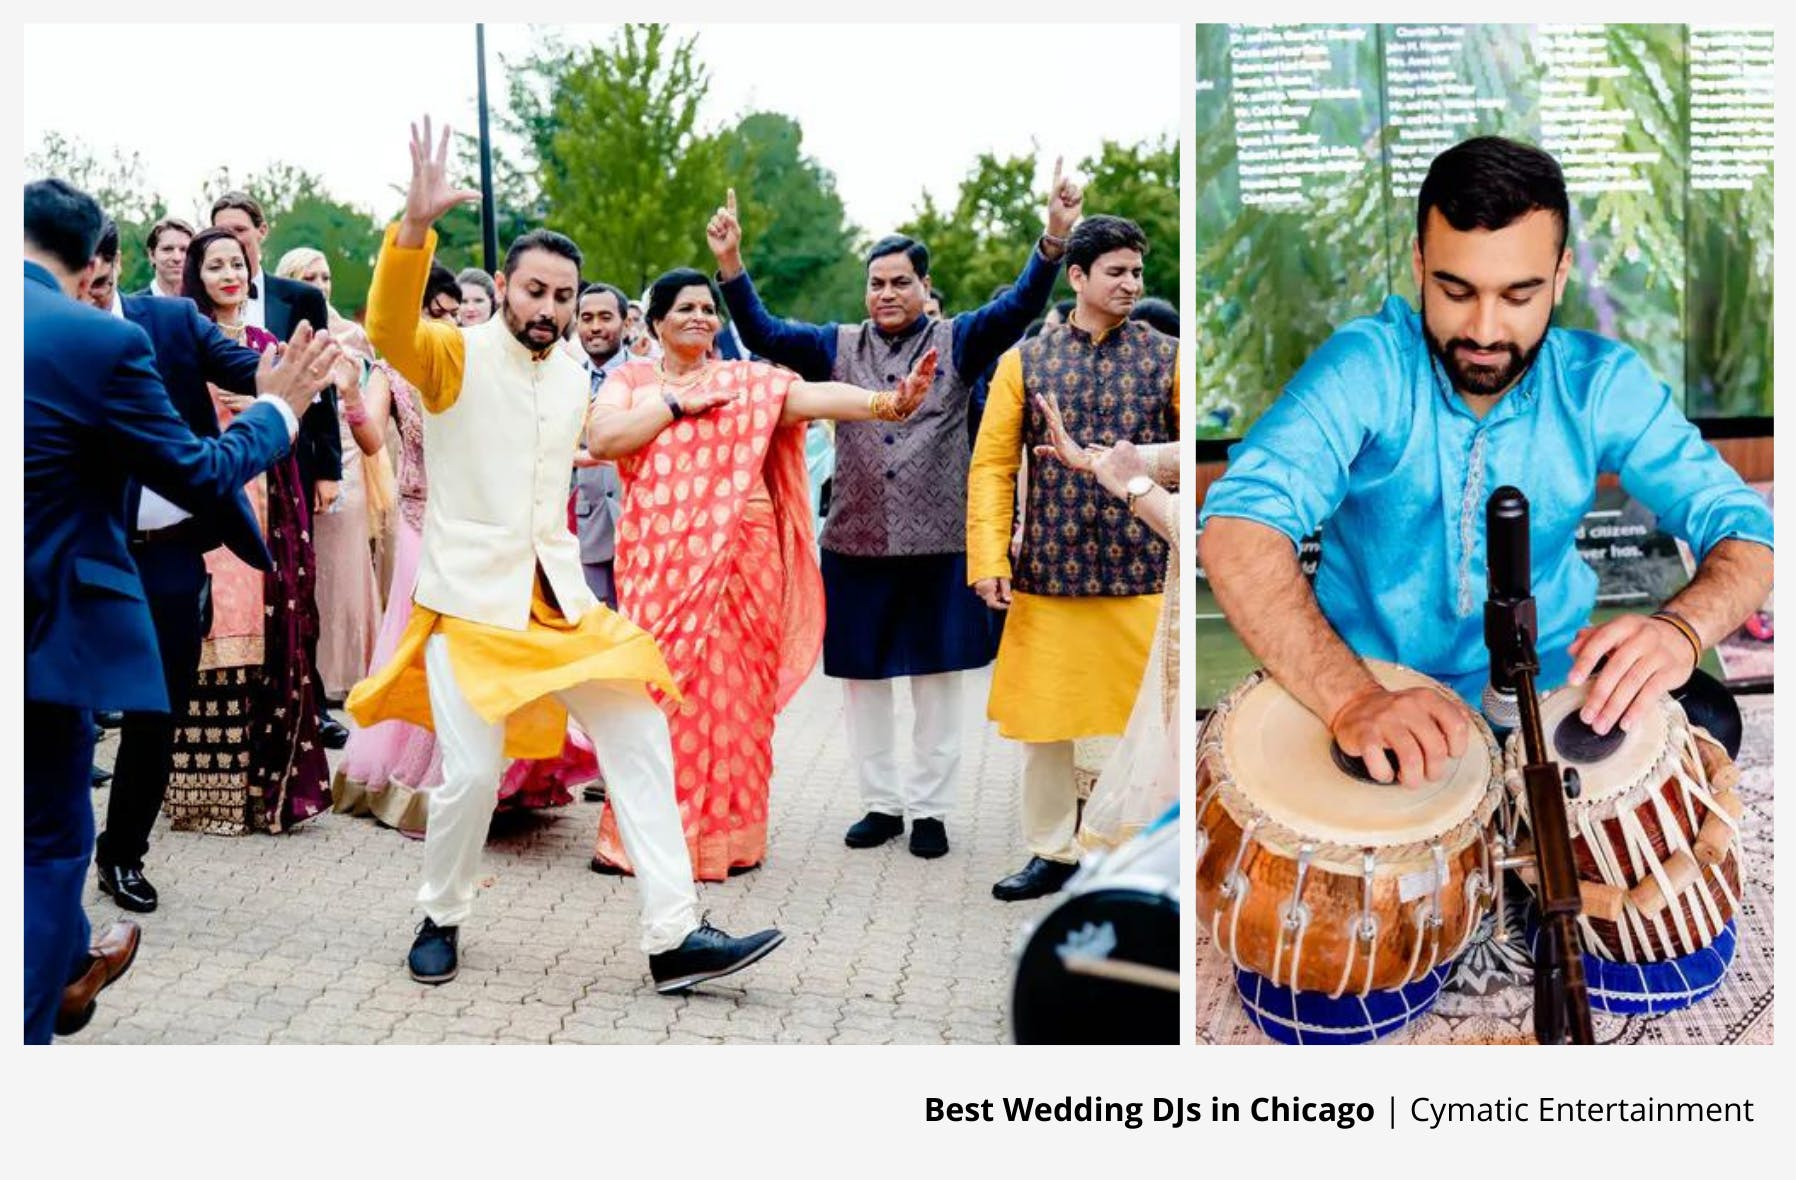 south asian wedding entertainment with man dancing and another playing drums | PartySlate